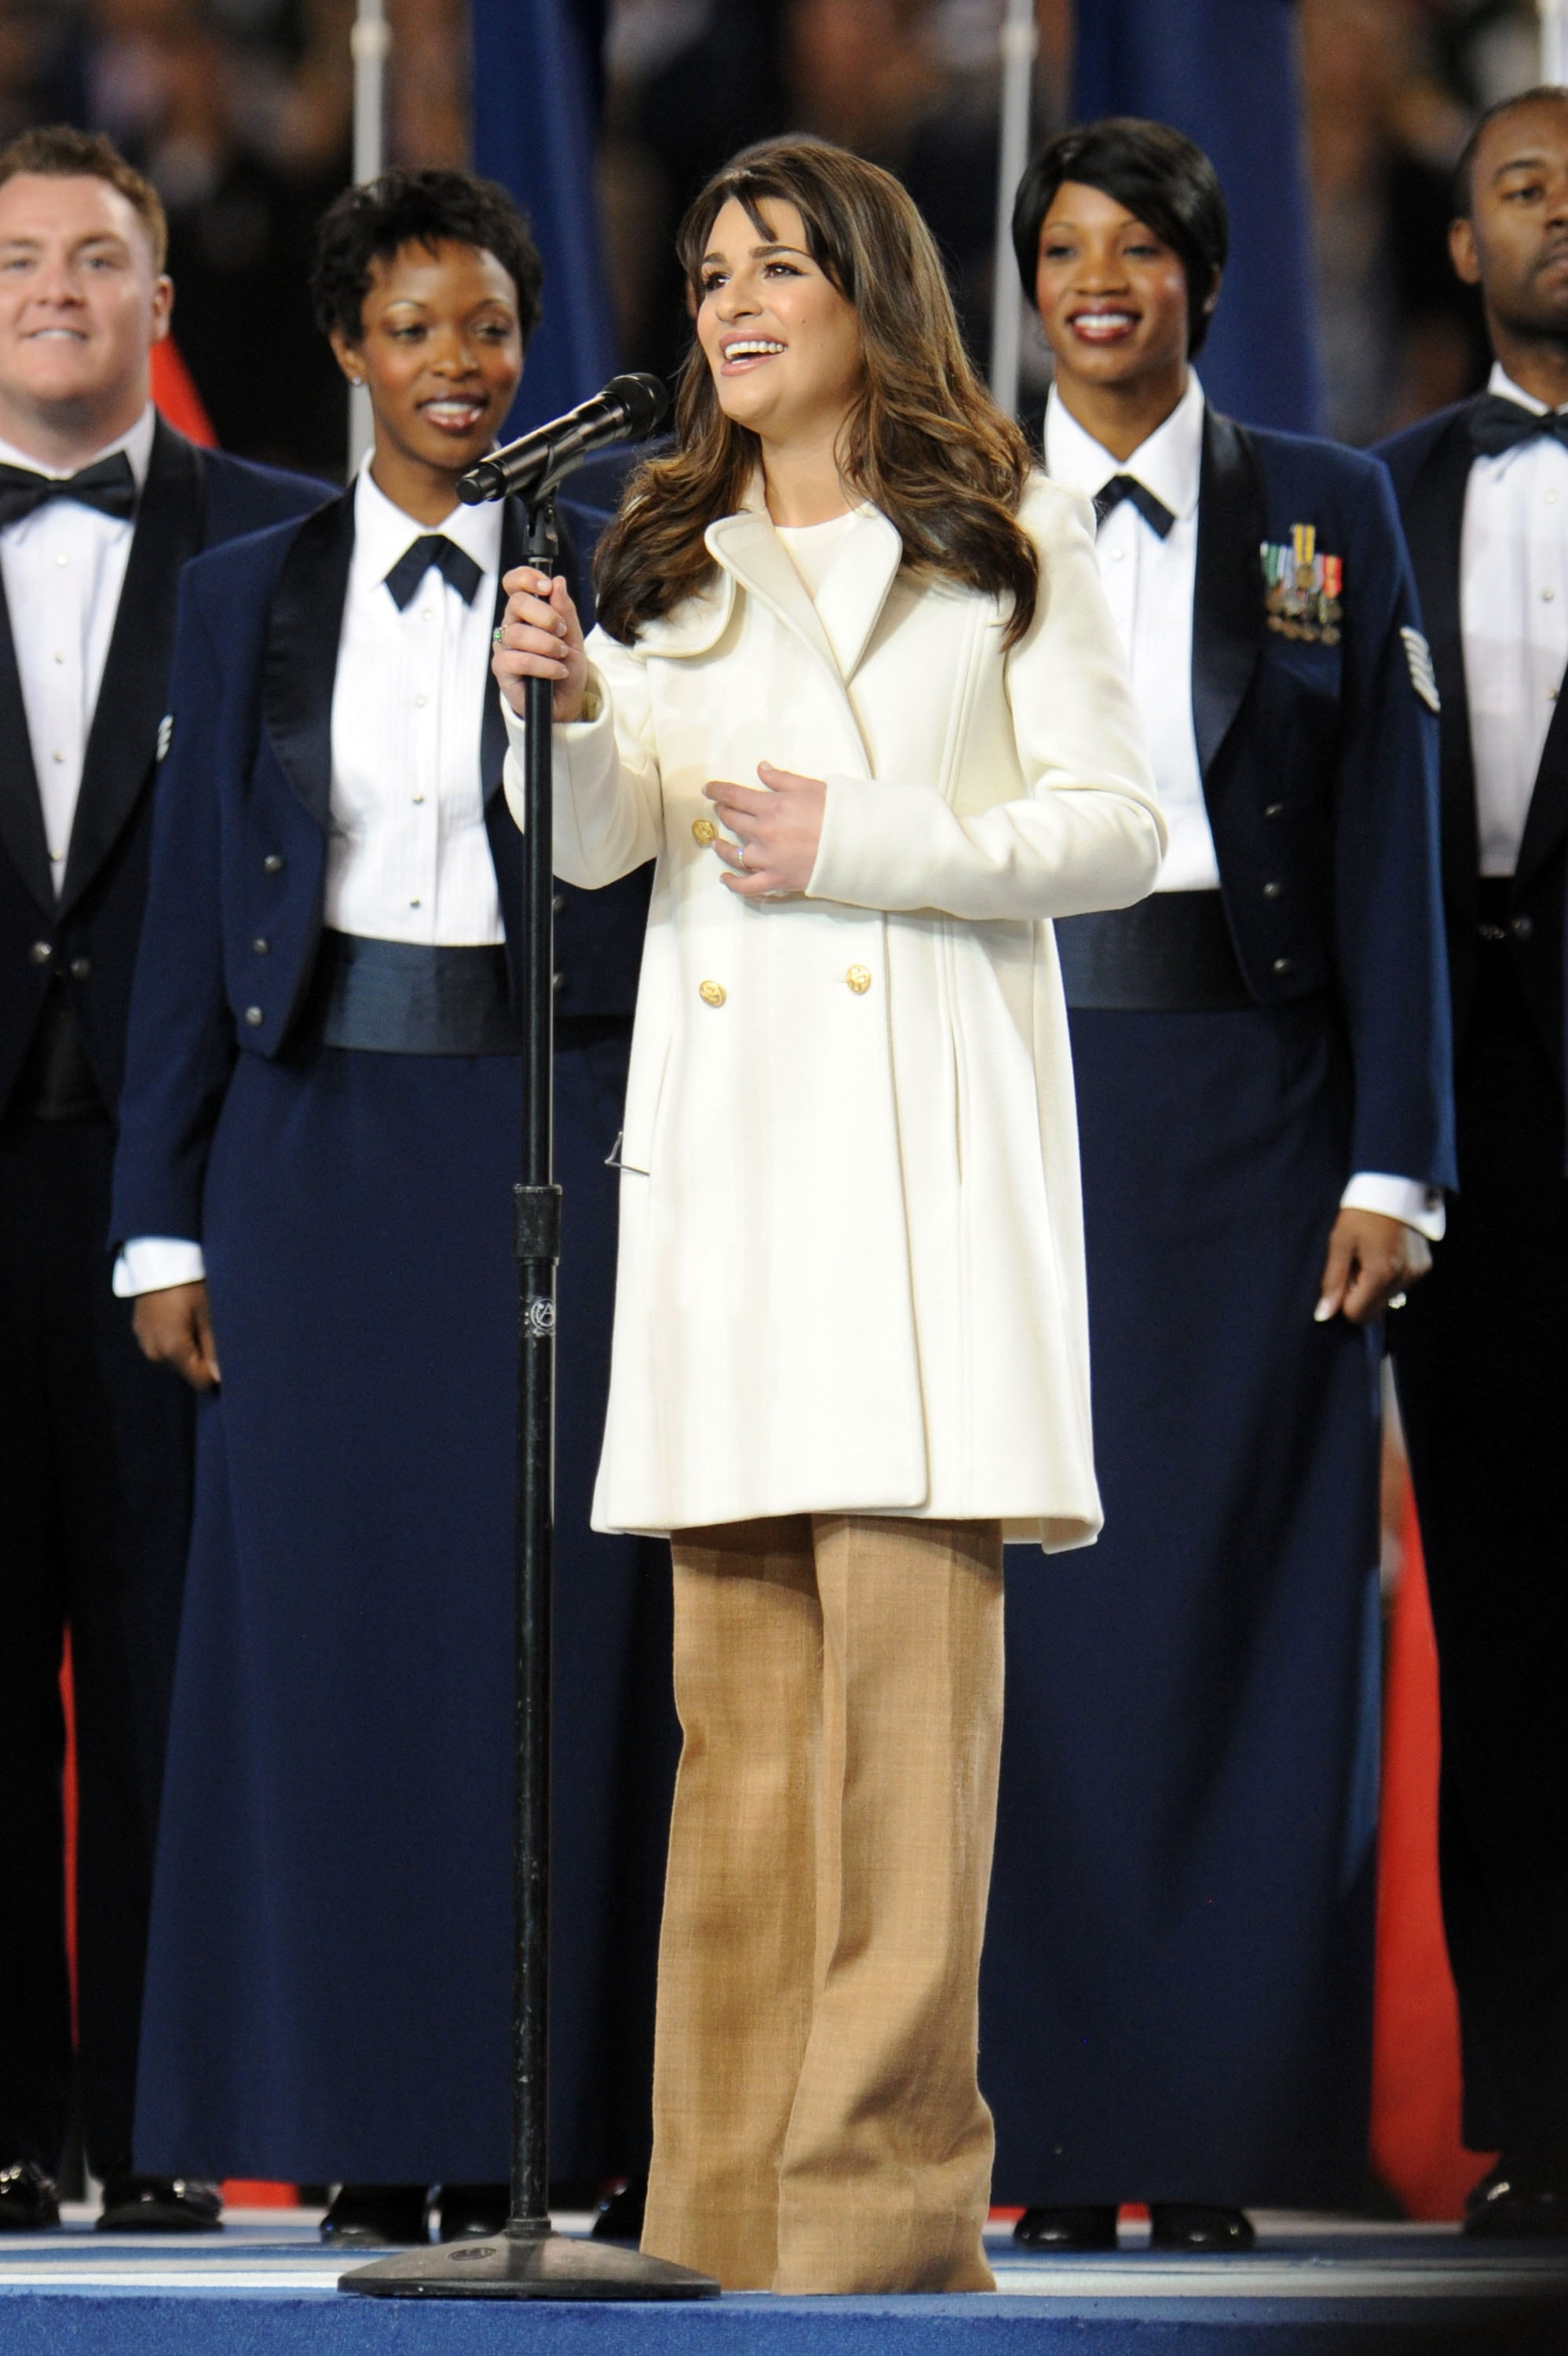 Lea Michele hit all the high notes during the pregame show in 2011.